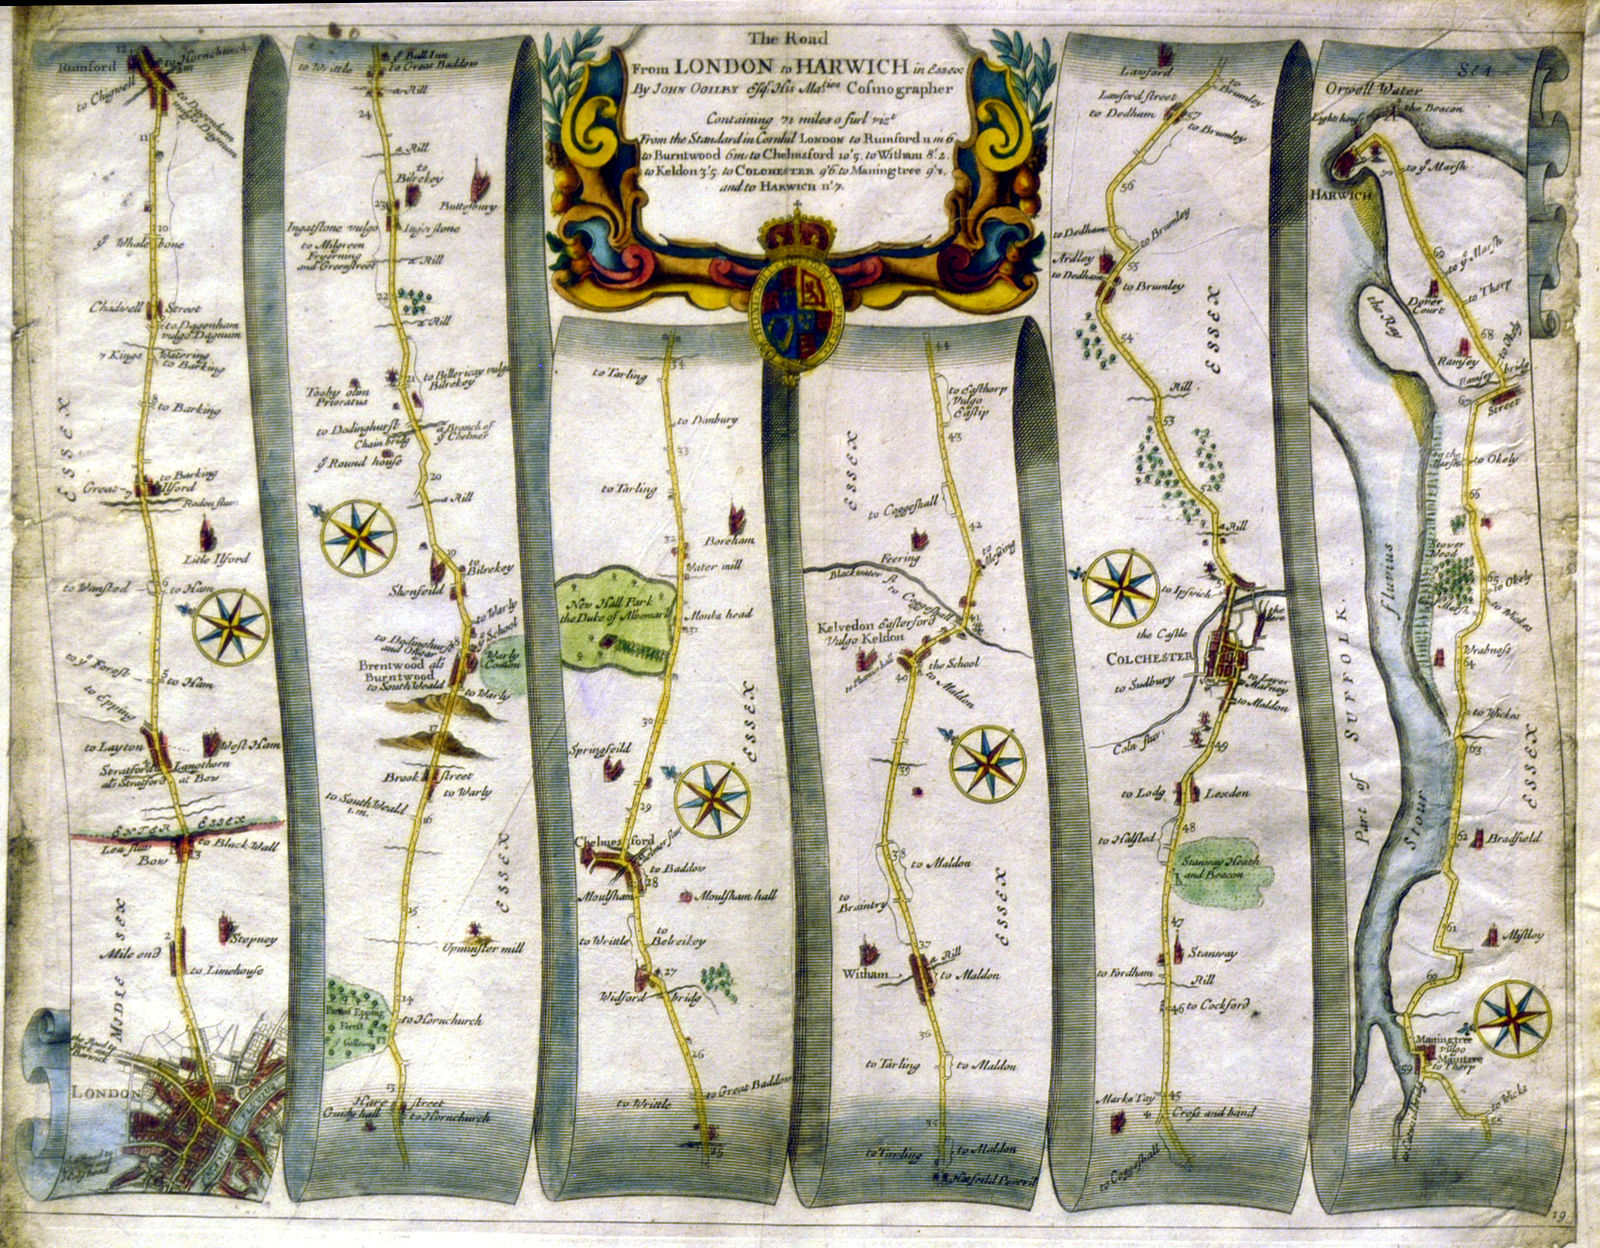 Map Of London 1600.File London To Harwich Map By John Ogilby Jpg Wikimedia Commons